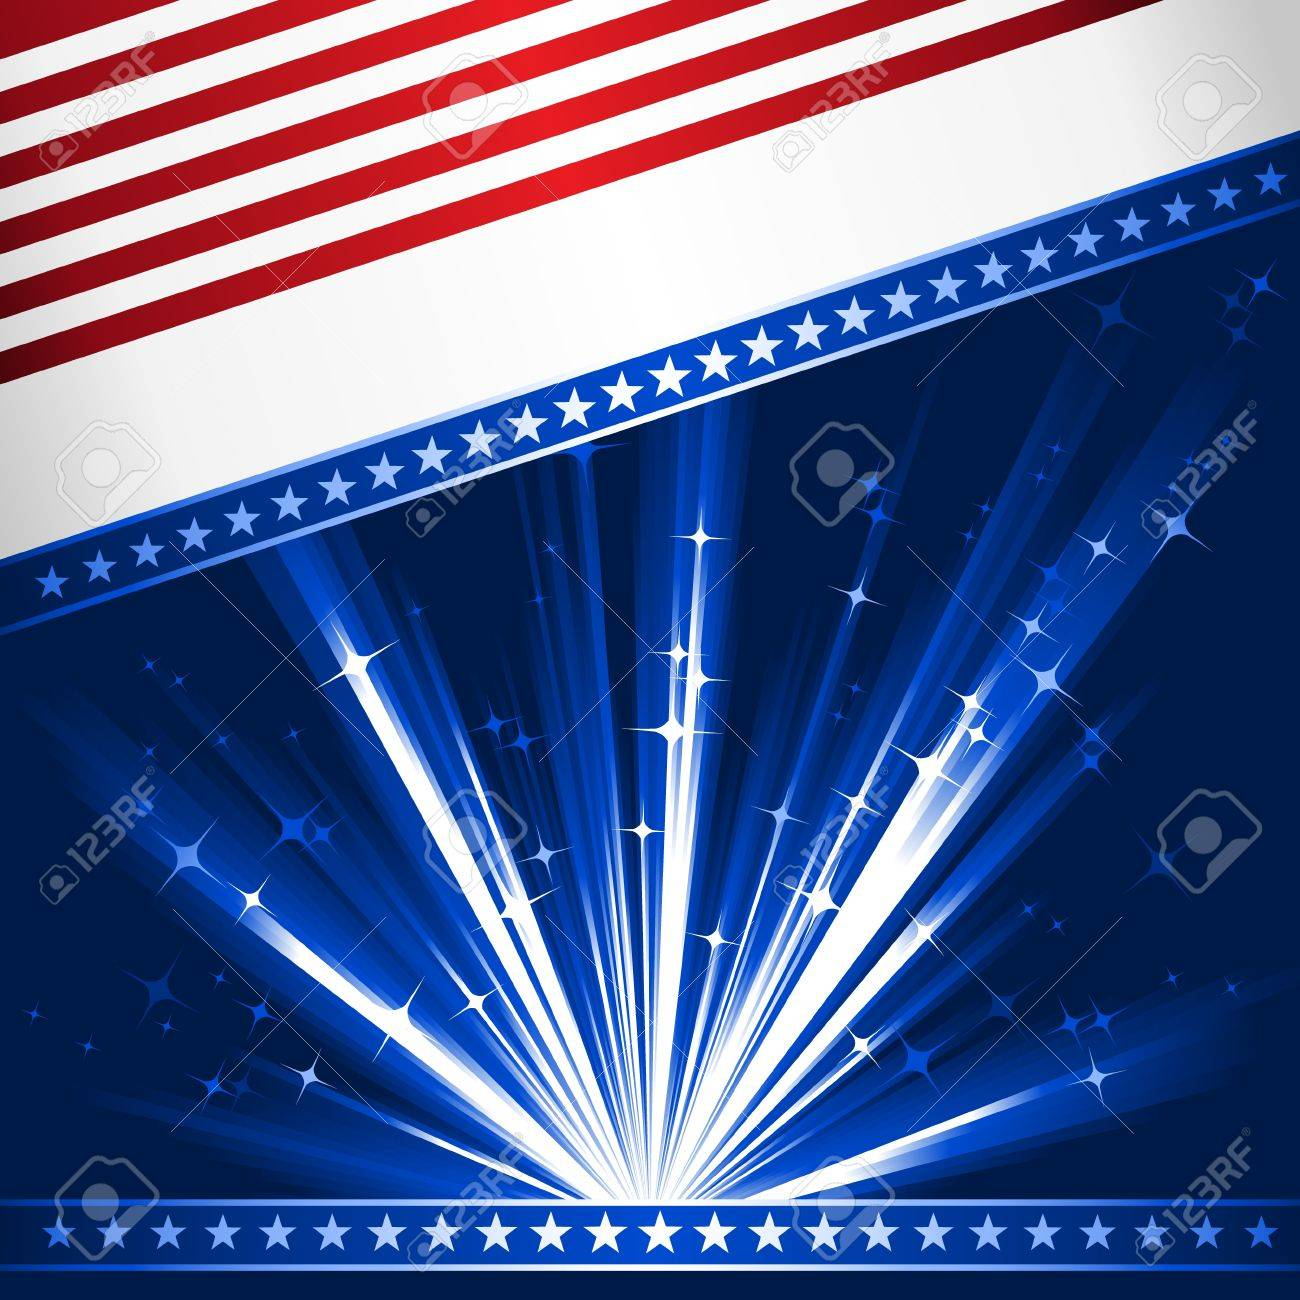 Background image o linear gradient - Patriotic 4th July Celebration Background Use Of 6 Global